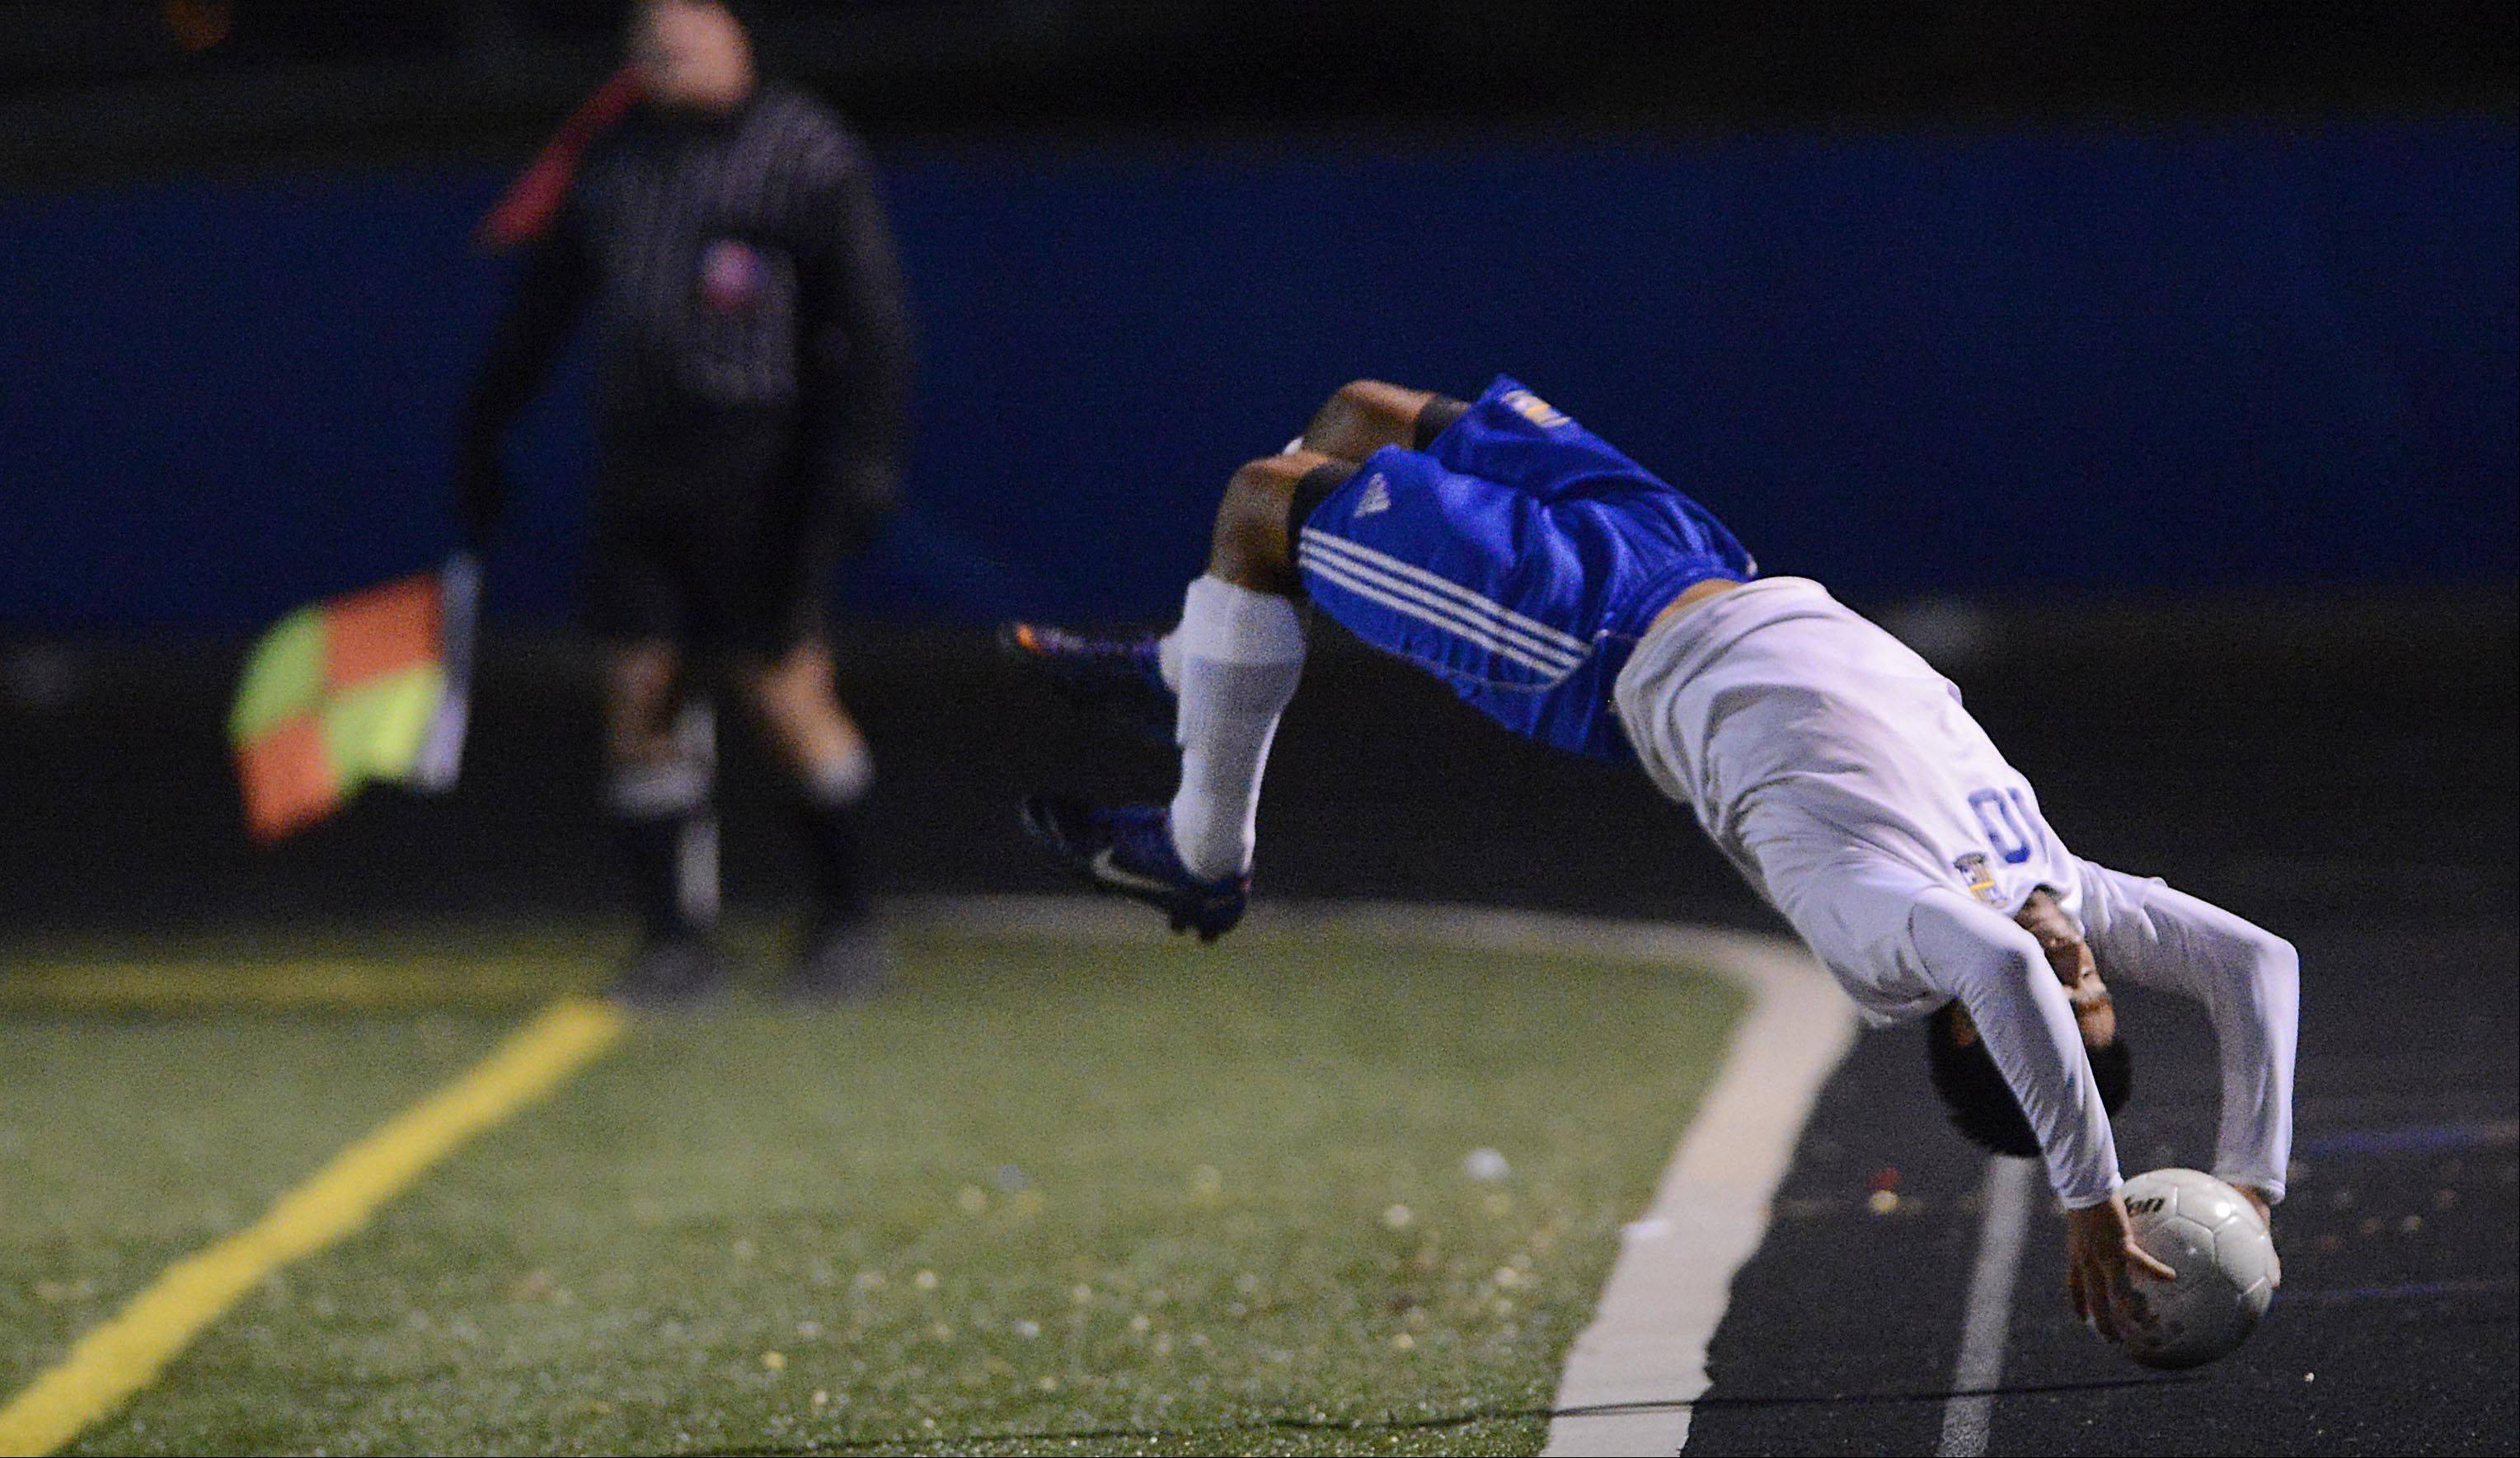 Wheeling's Ivan Mancilla delivers a flip throw-in from the sidelines in the Class 3A boys soccer state championship game Saturday night in Hoffman Estates.